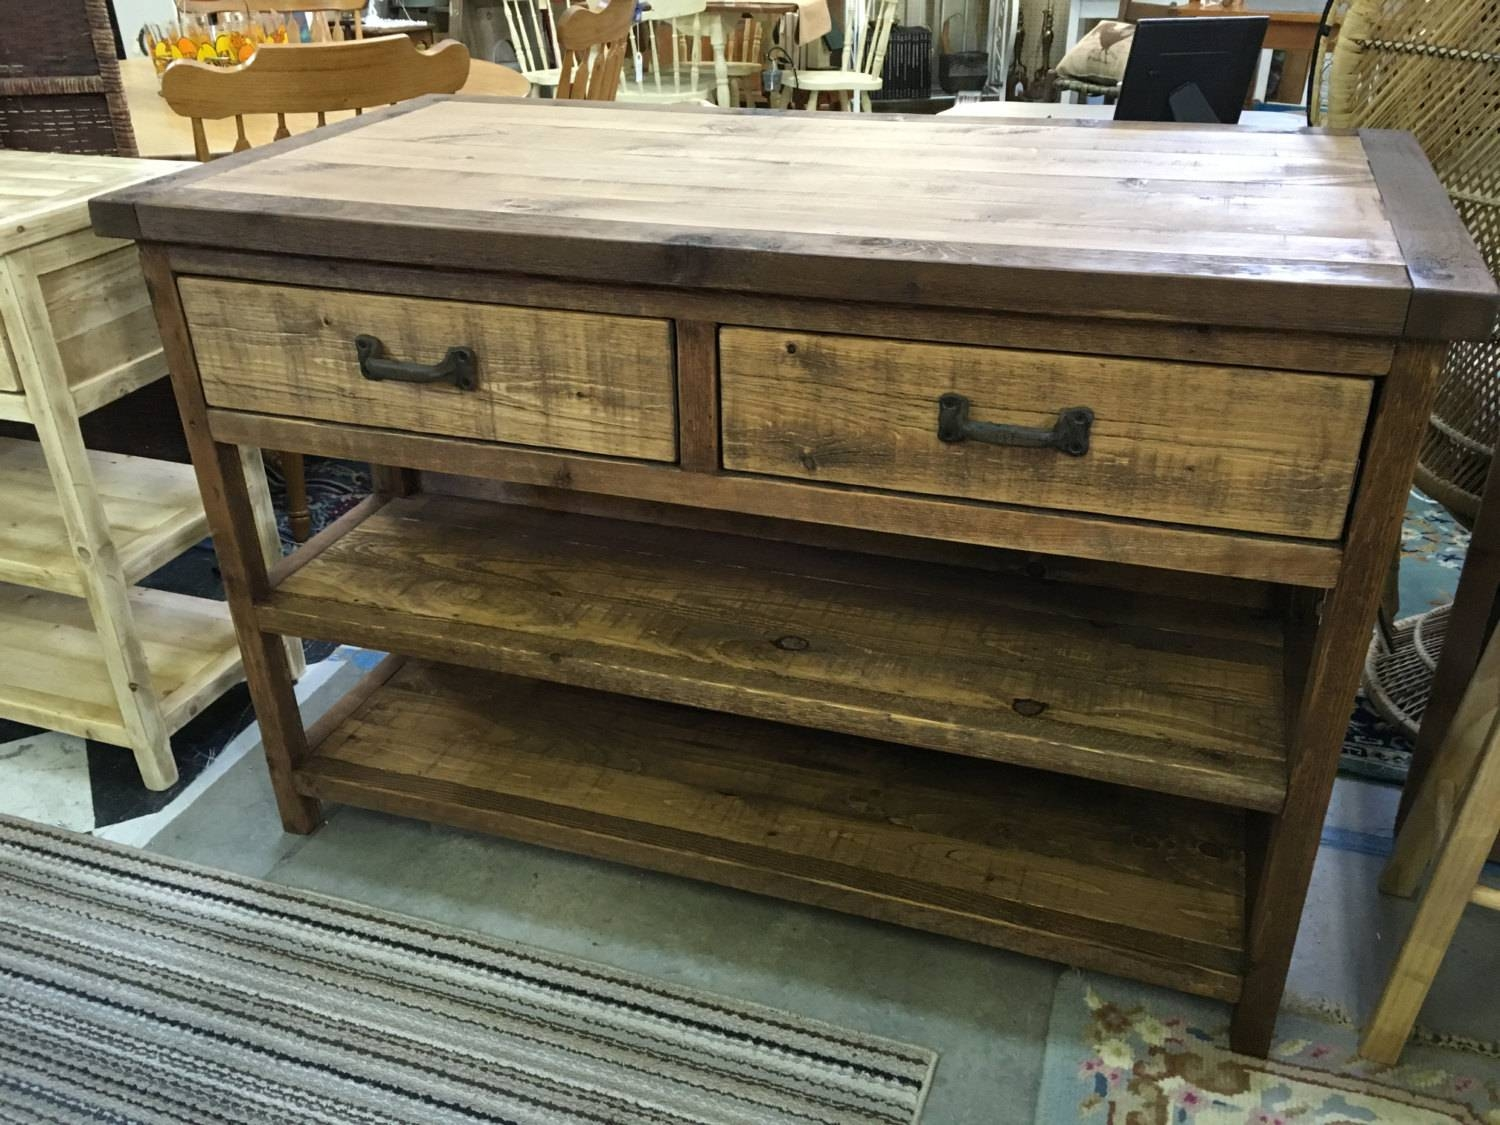 Inspiration about Vintage Outdoor Sideboard — The Homy Design : Pine Outdoor Regarding Most Popular Outdoor Sideboard Tables (#11 of 15)